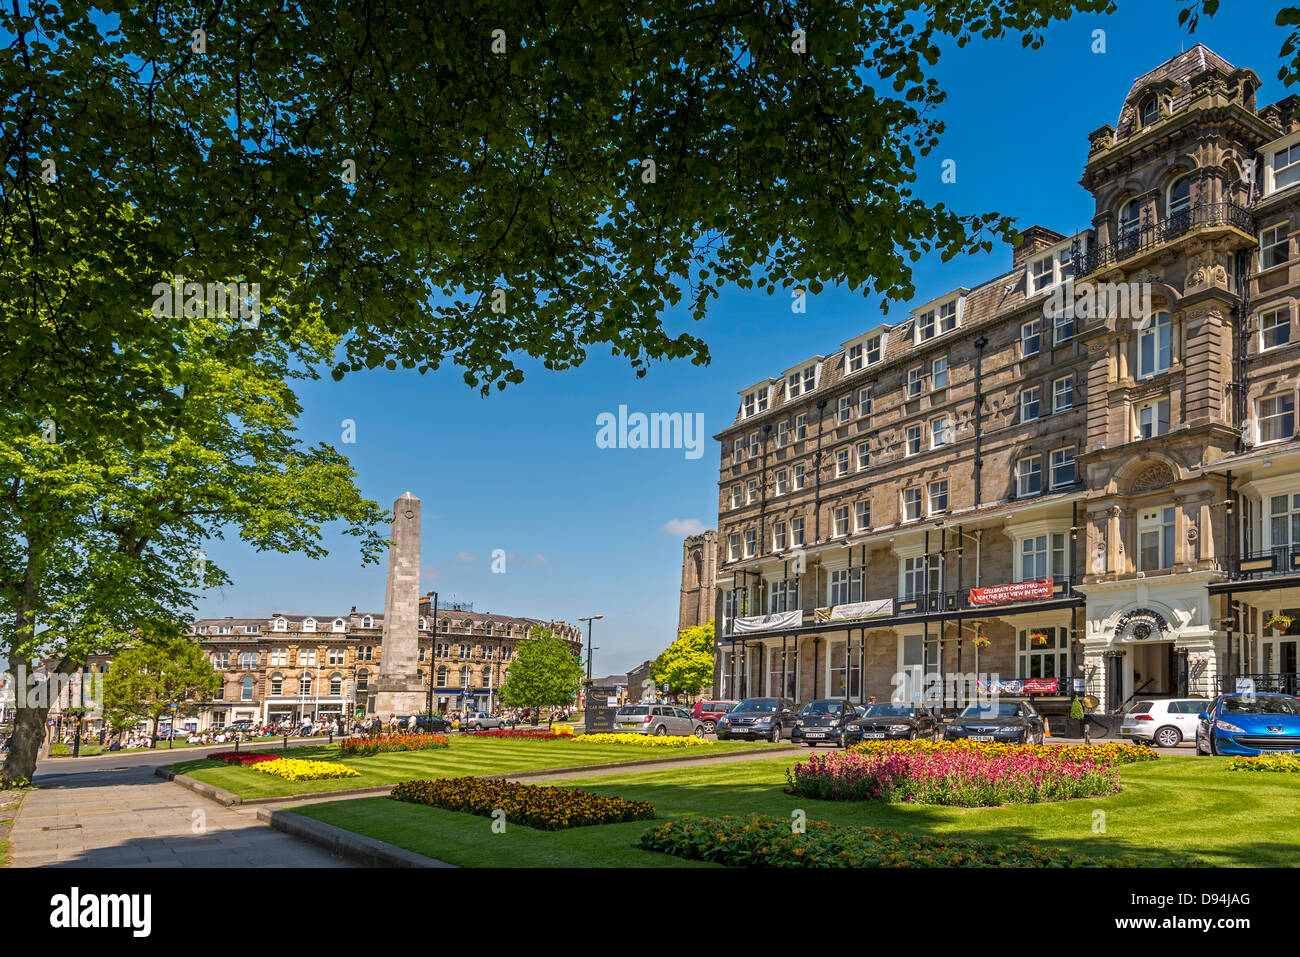 The Cenotaph in Harrogate  town centre with the Yorkshire Hotel on the right. The North of England. - Stock Image